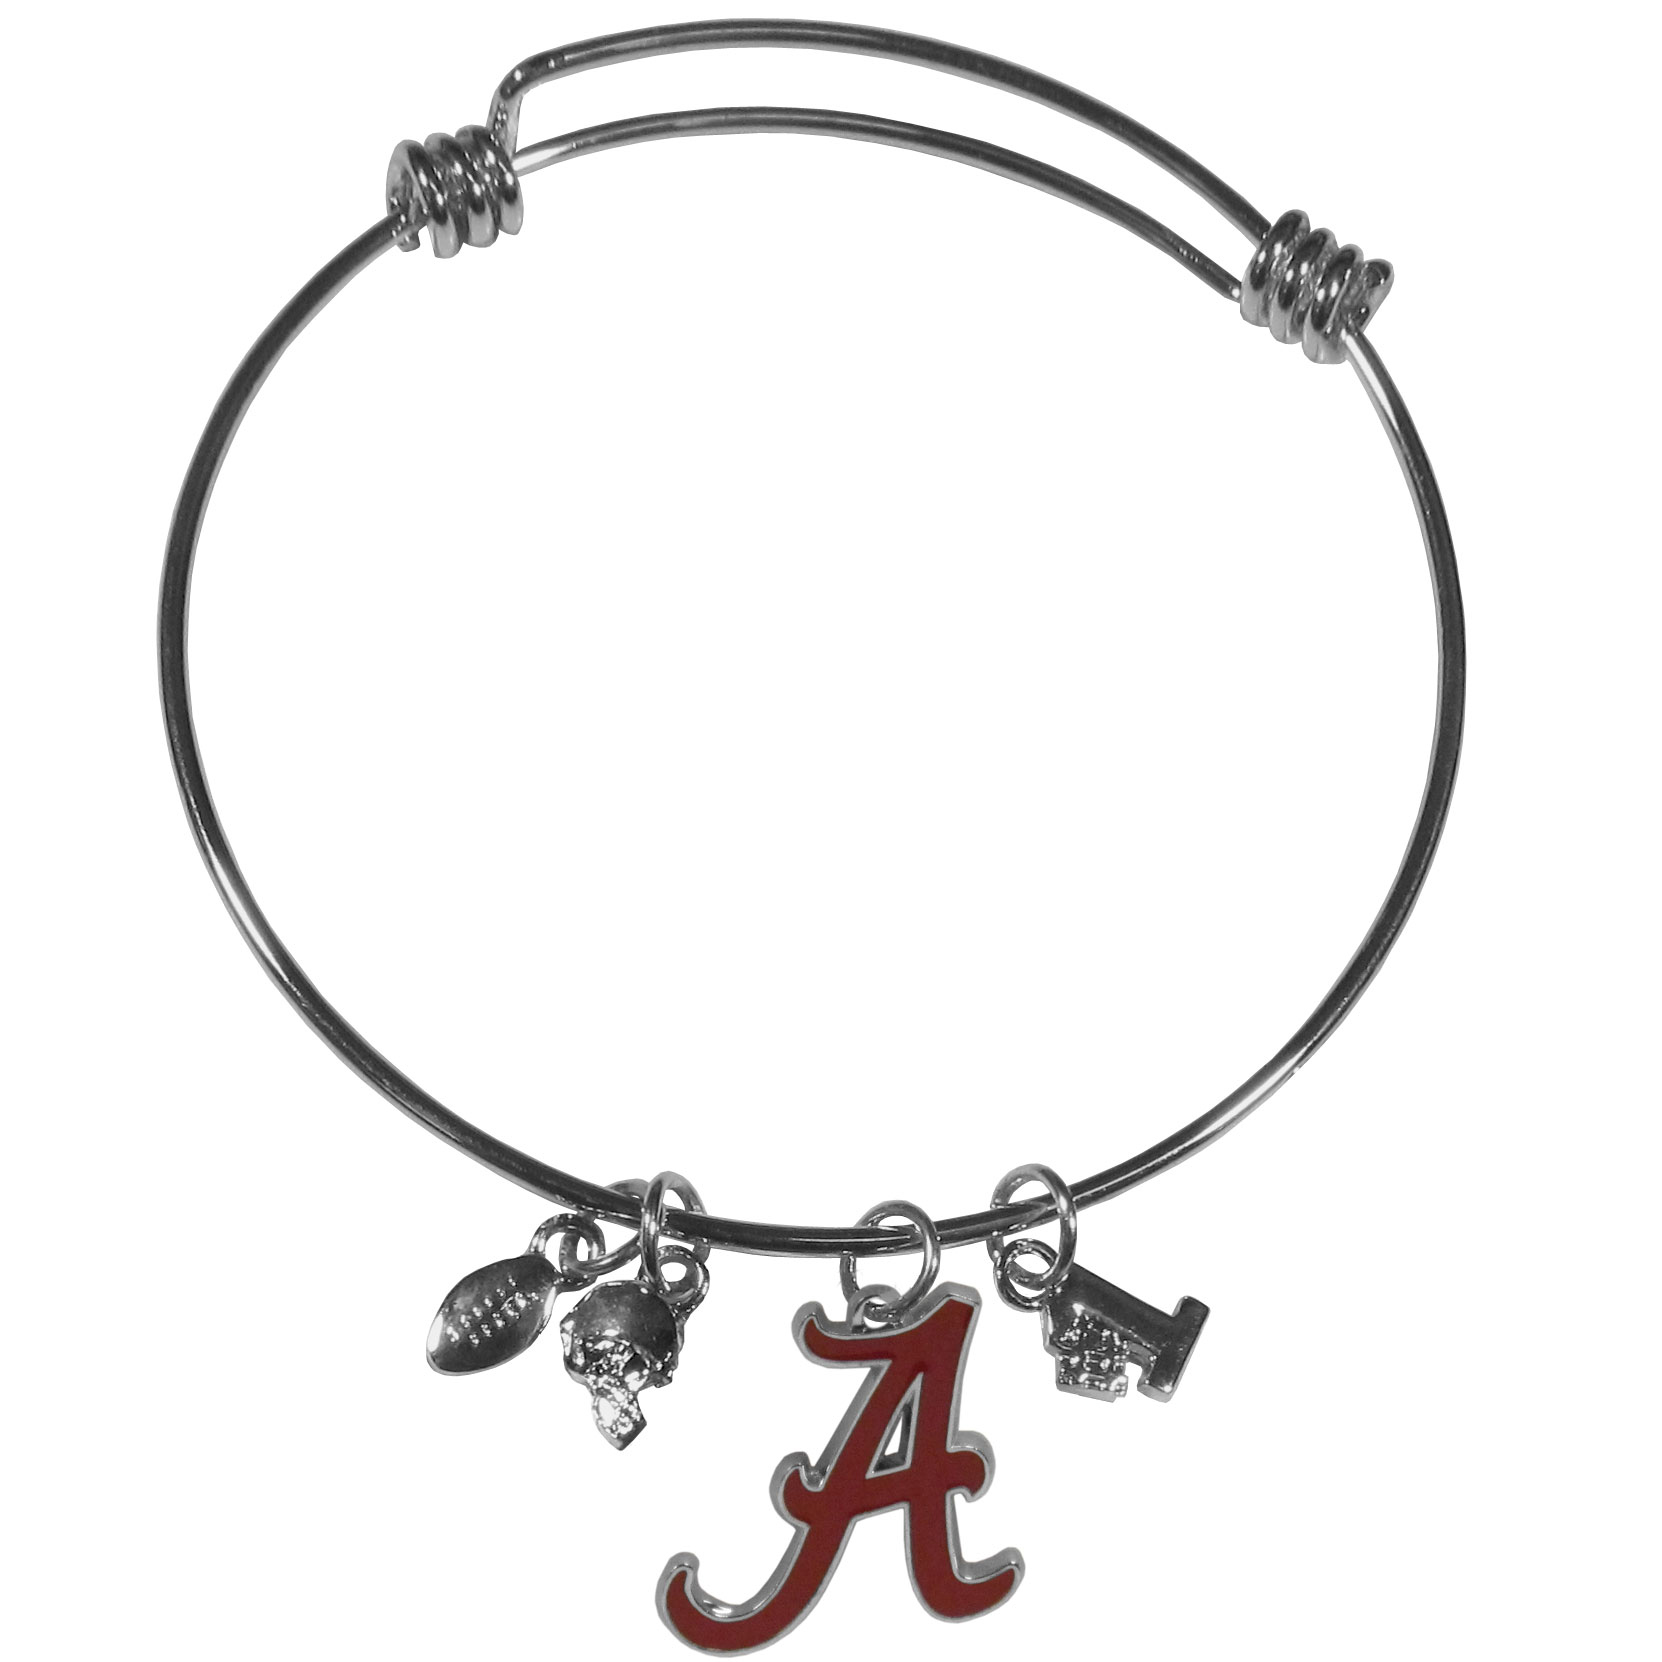 Alabama Crimson Tide Charm Bangle Bracelet - Adjustable wire bracelets are all the rage and this Alabama Crimson Tide bracelet matches the popular trend with your beloved team. The bracelet features 4 charms in total, each feature exceptional detail and the team charm has enameled team colors.